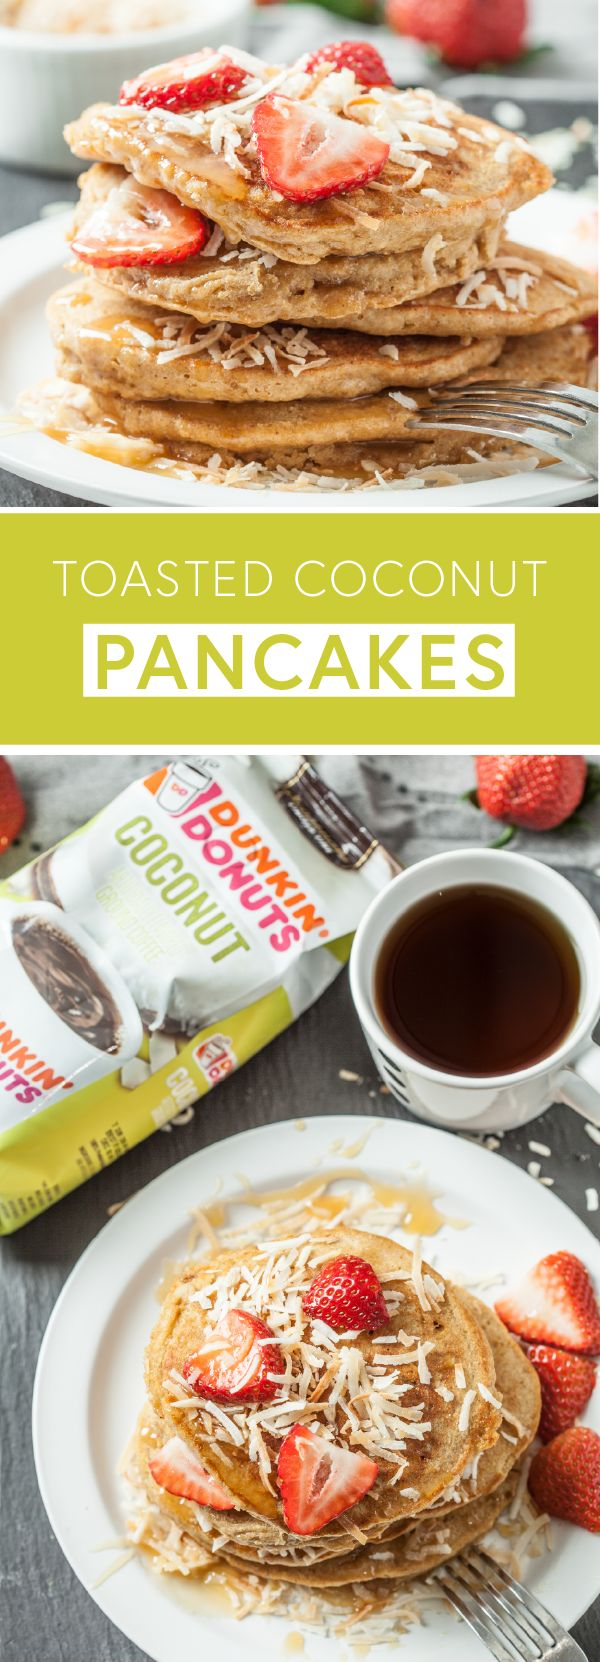 What could be better to wake up to than these Toasted Coconut Pancakes with Dunkin' Donuts® Coconut Flavored Coffee? Featuring the rich and tasty flavors you love, this breakfast combination is sure to make mornings even brighter. Find all the ingredients you'll need to start your day with this delicious duo by heading to Target.